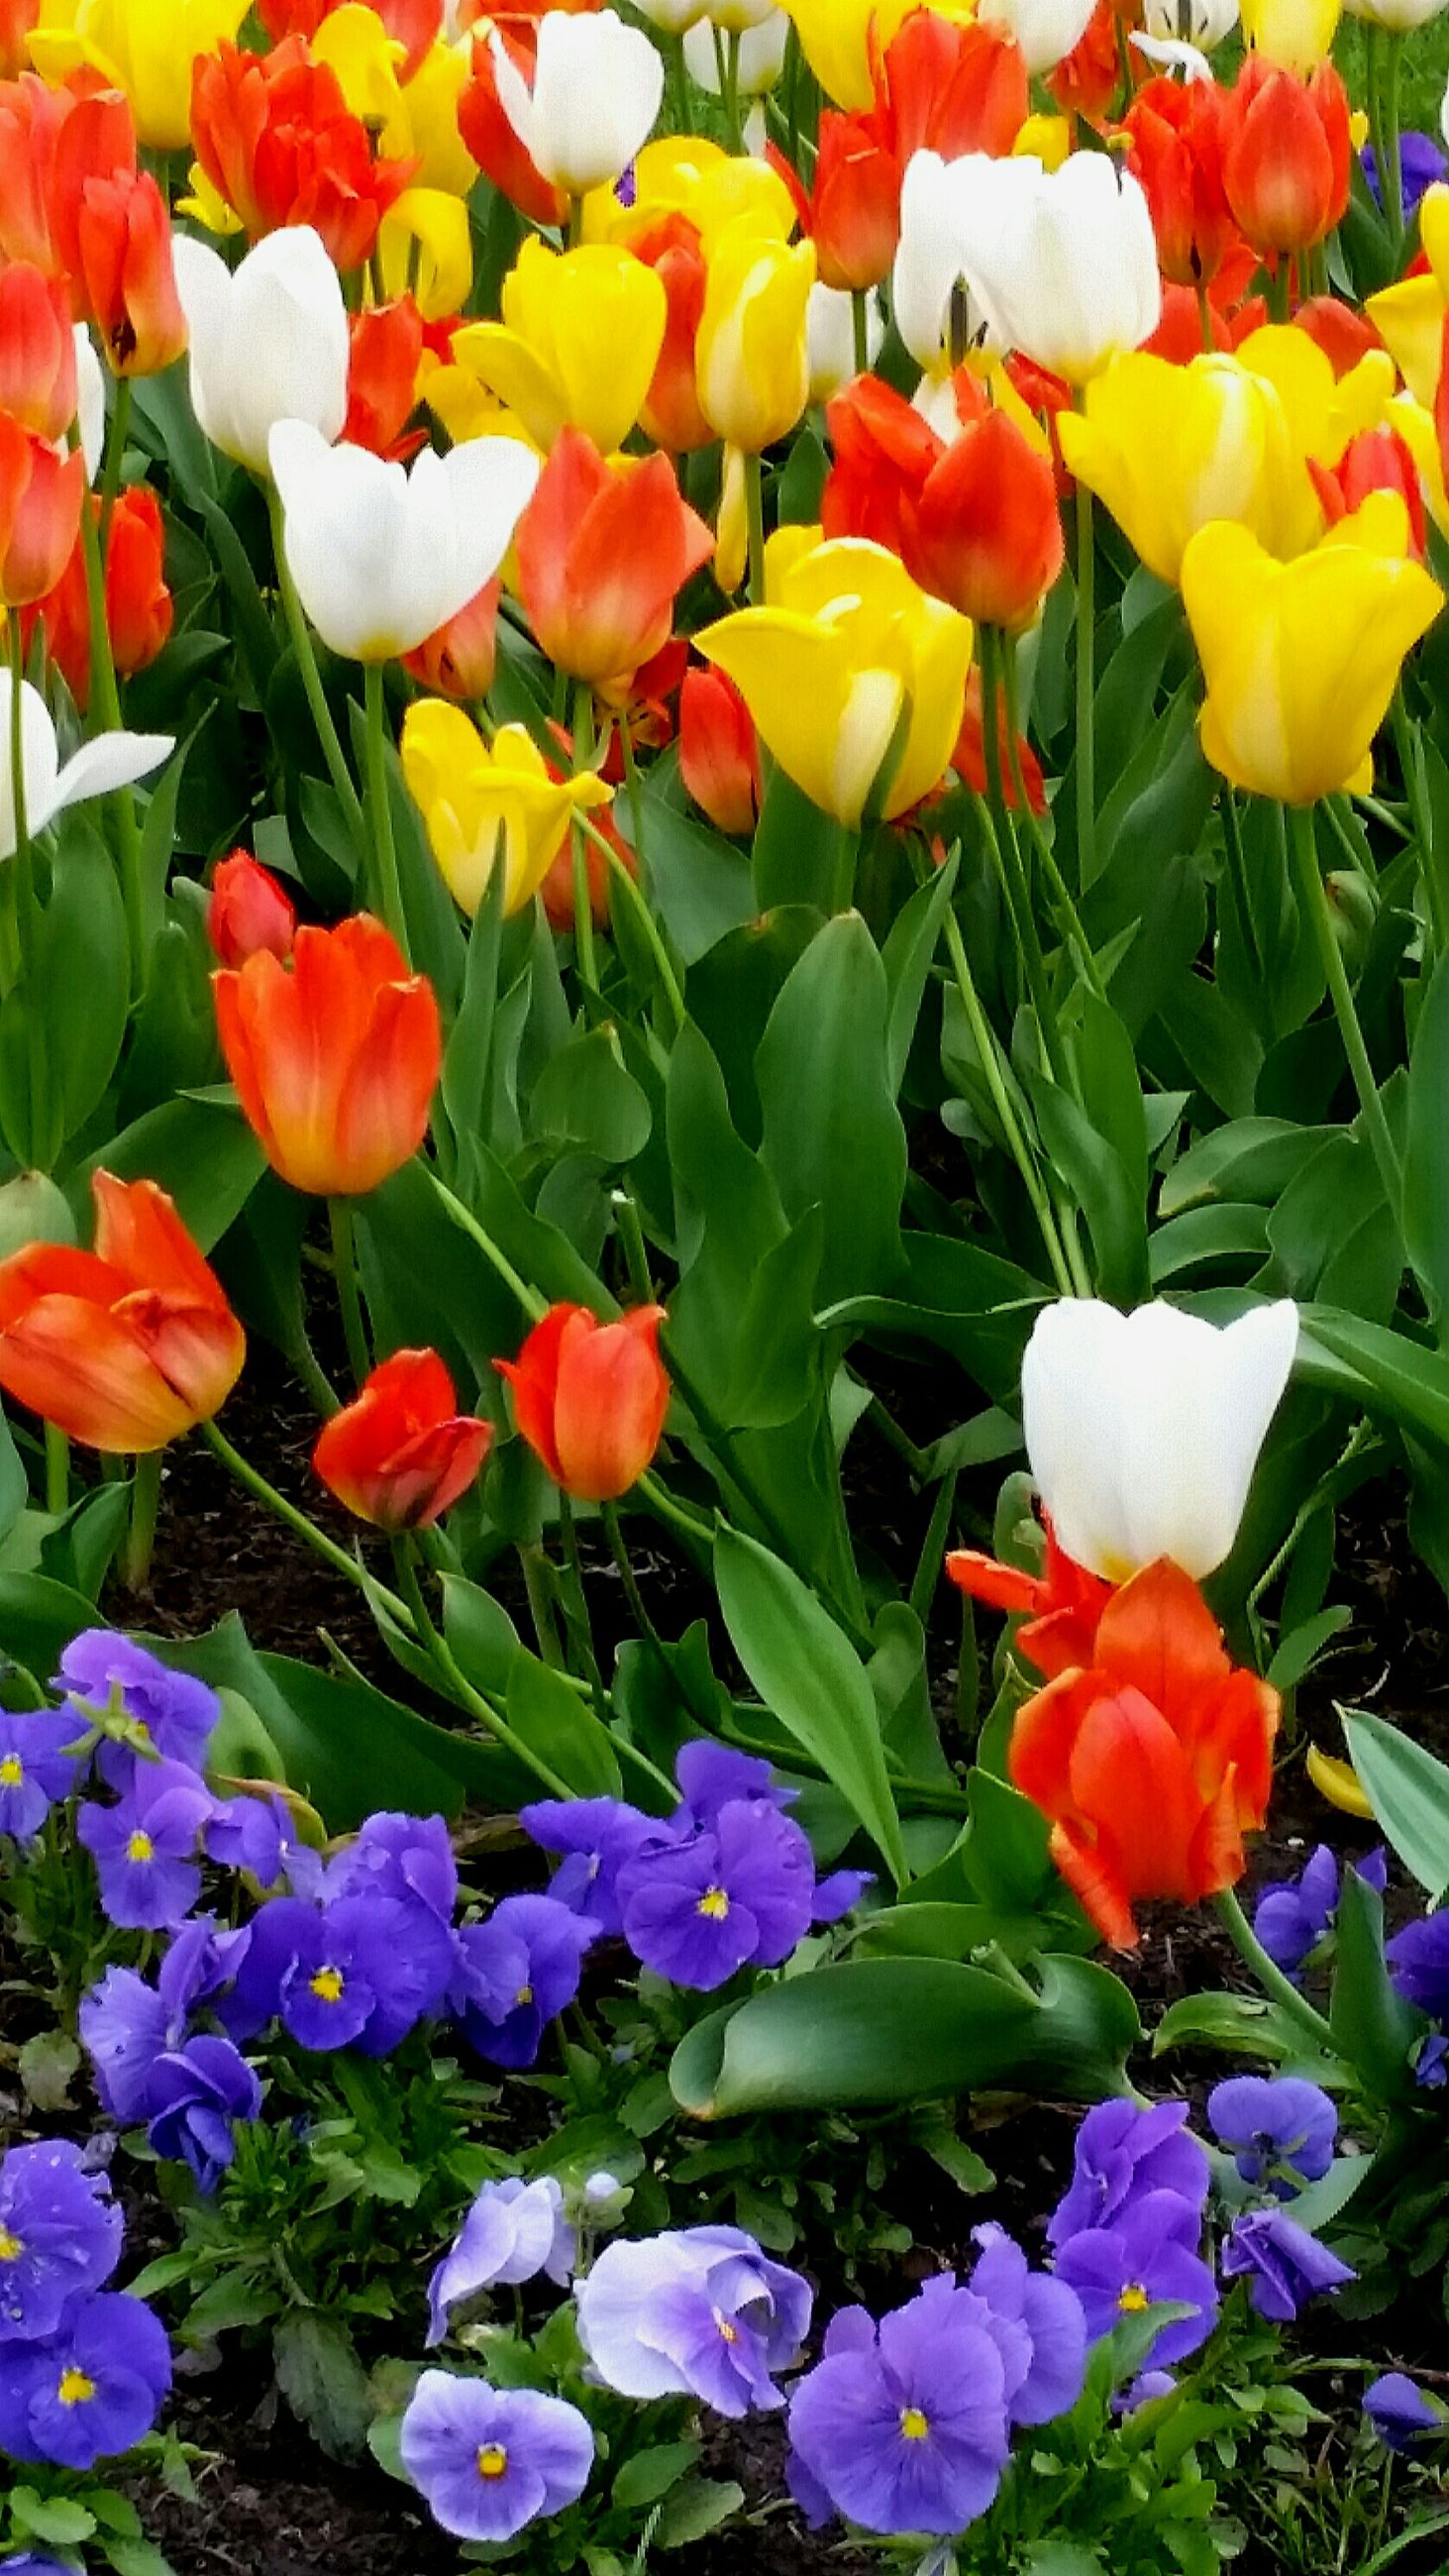 flower, freshness, petal, fragility, beauty in nature, flower head, growth, blooming, multi colored, tulip, abundance, nature, full frame, plant, high angle view, backgrounds, variation, field, in bloom, yellow